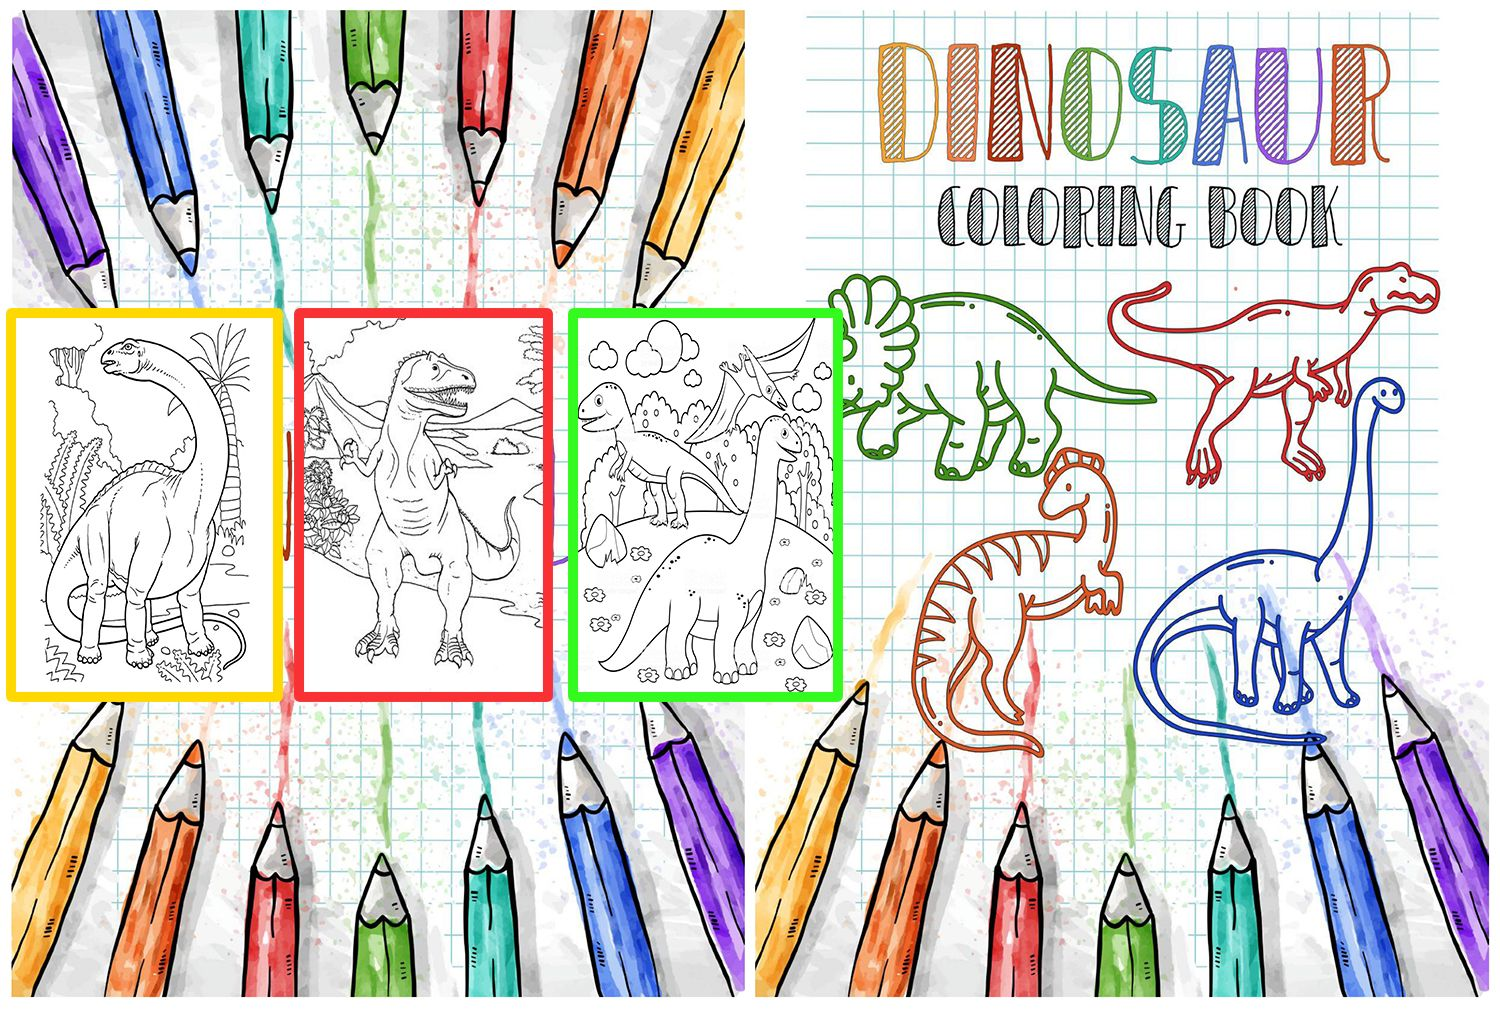 Khalidrazi555 I Will Create A Coloring Book Pages For Your Kdp Amazon Project For 5 On Fiverr Com Coloring Books Coloring Book Pages Book Pages